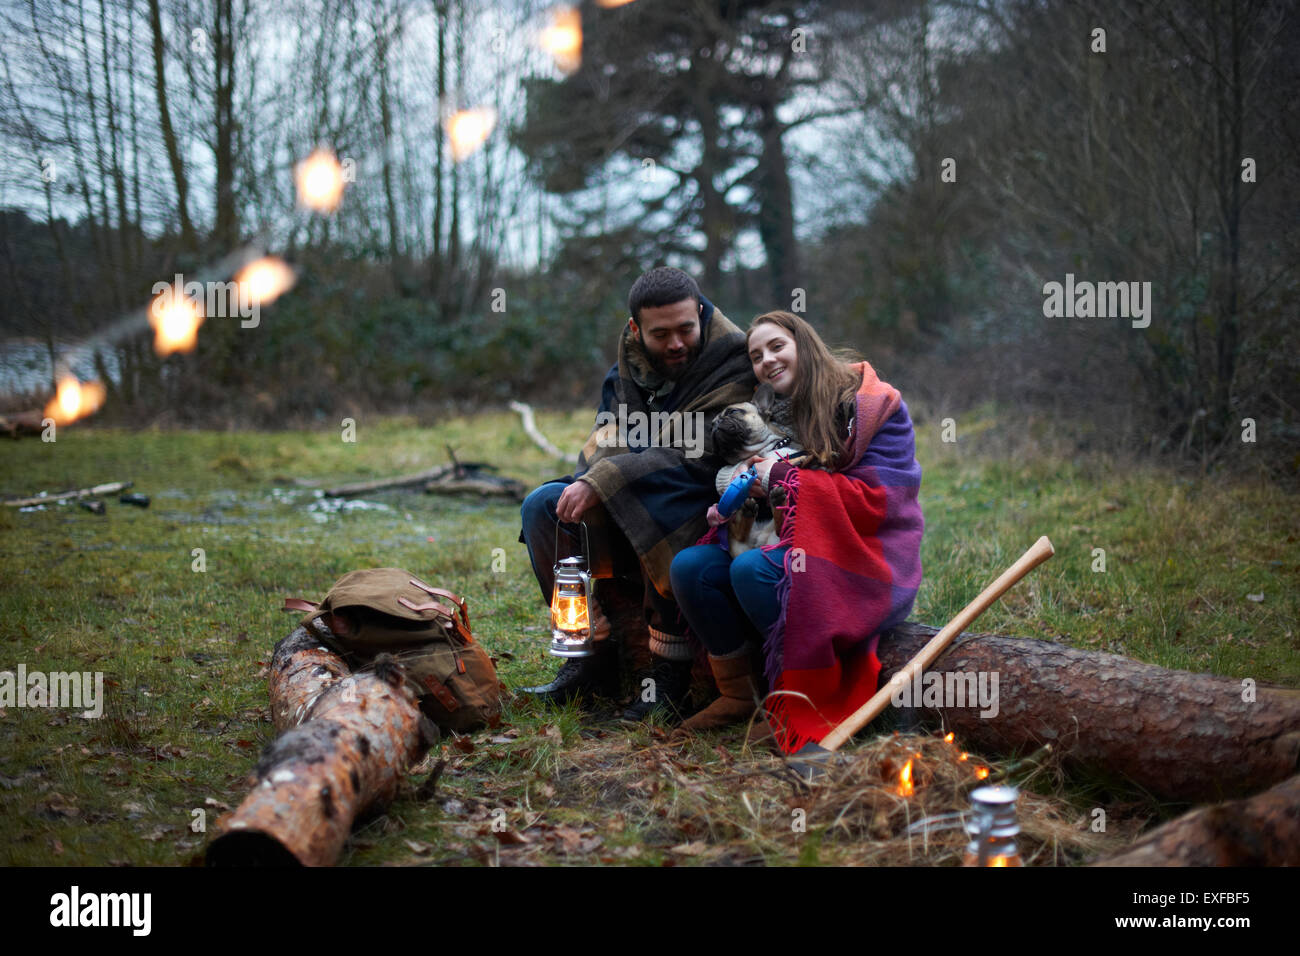 Young camping couple with dog wrapped in blanket in woods - Stock Image